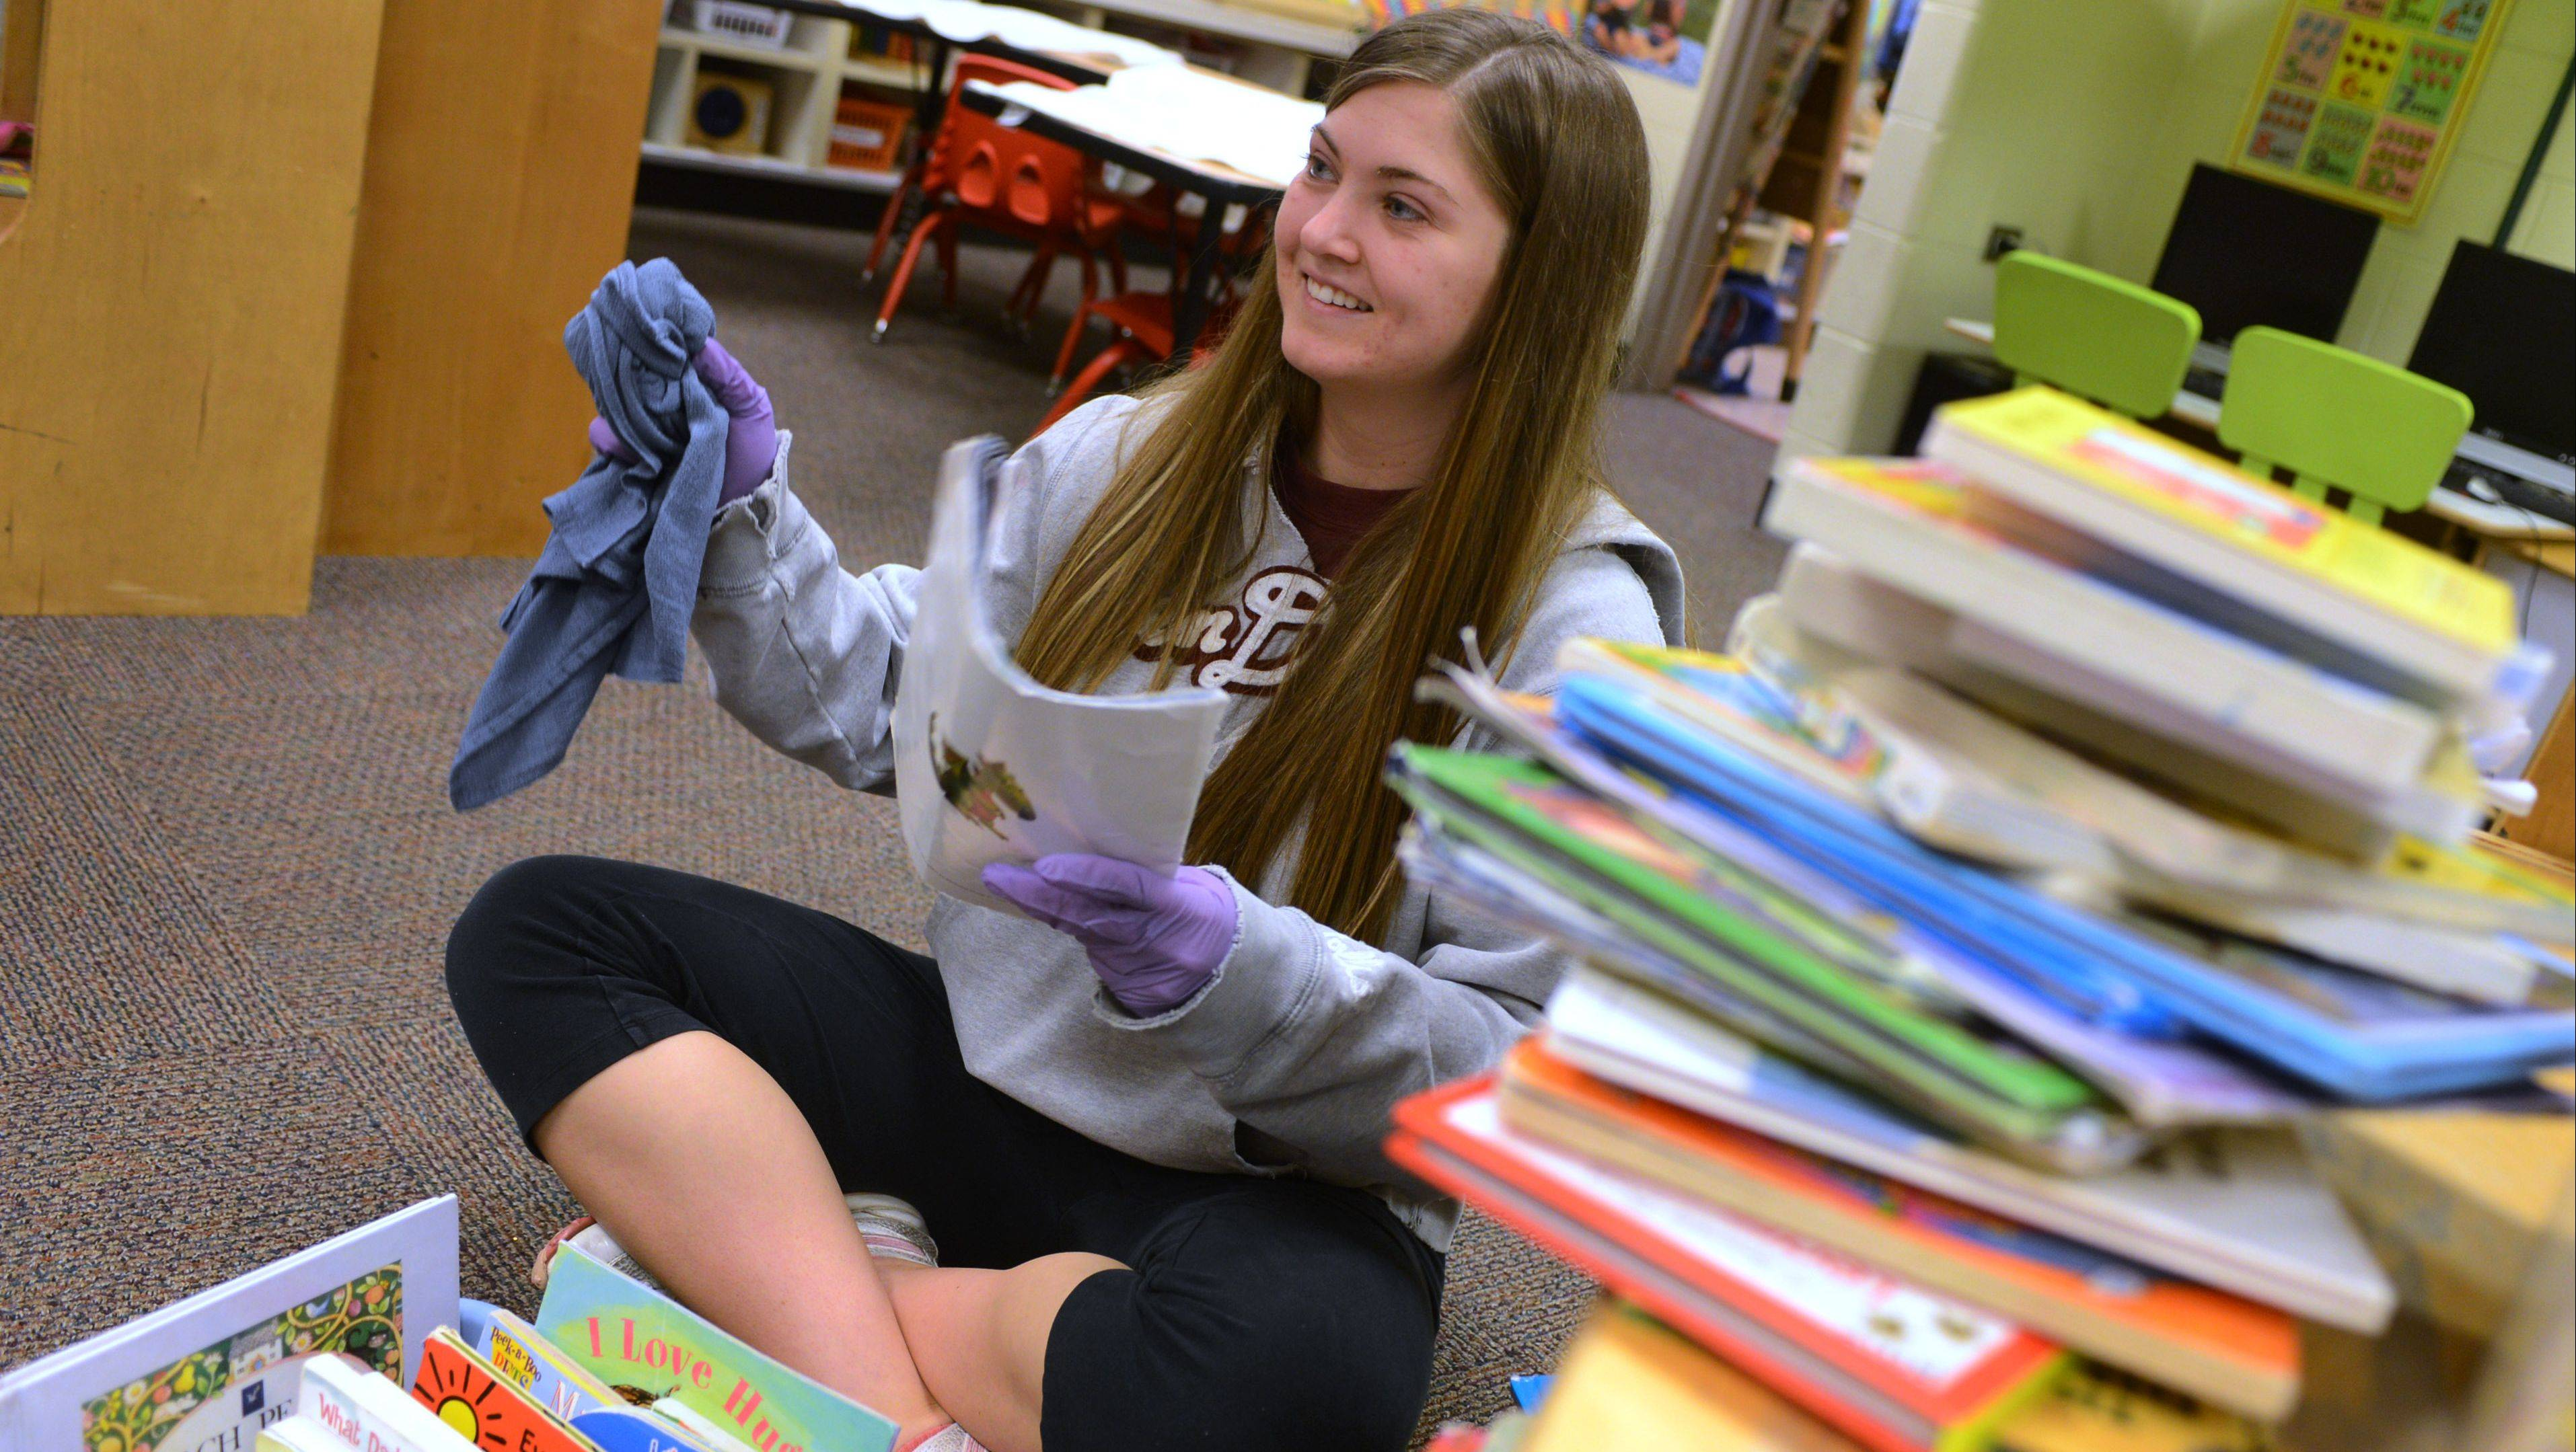 Antioch resident Katie Graziano wipes down books in the College of Lake County Children�s Learning Center Saturday.